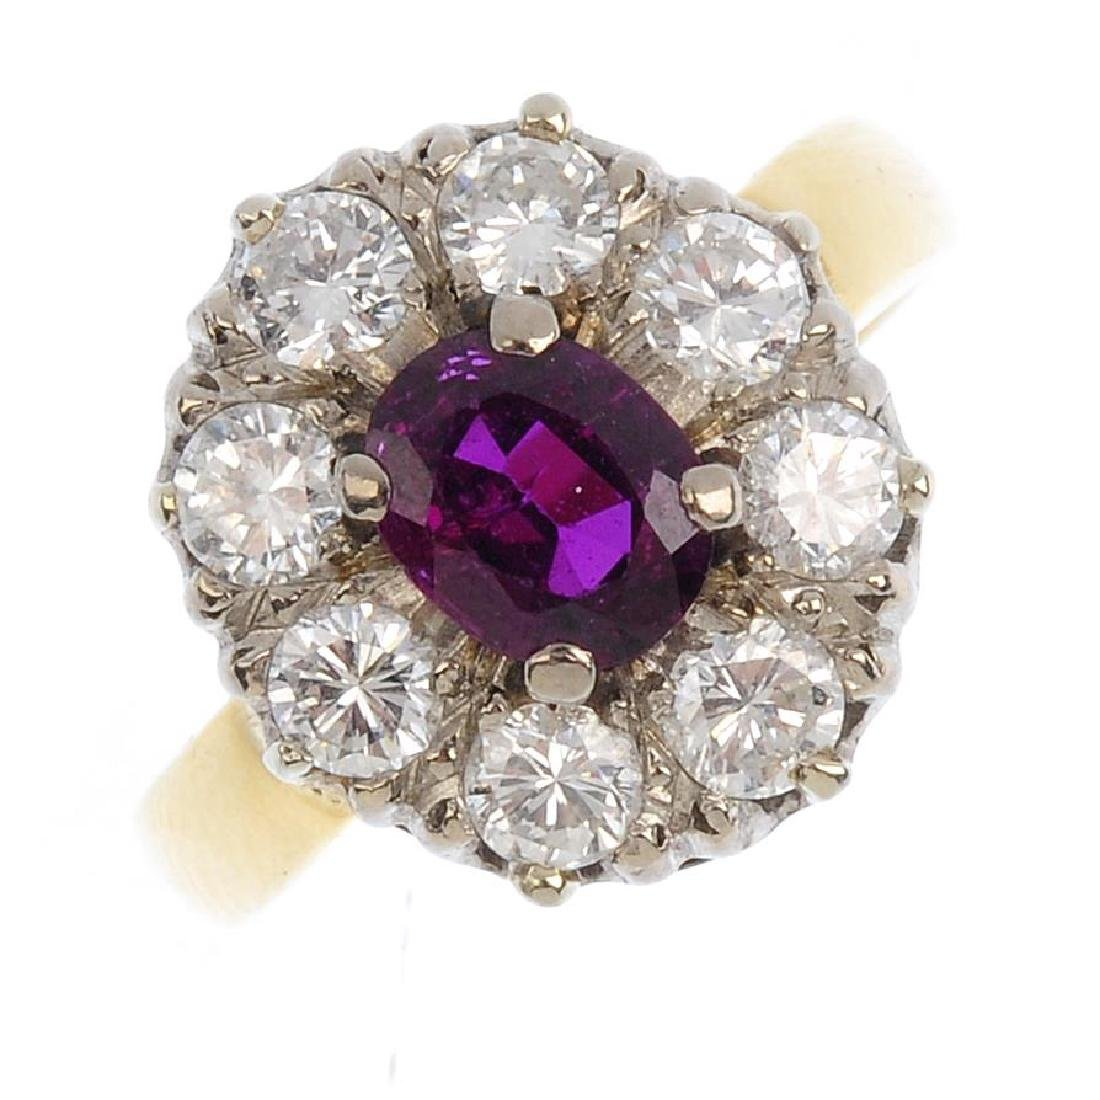 An 18ct gold ruby and diamond cluster ring. The